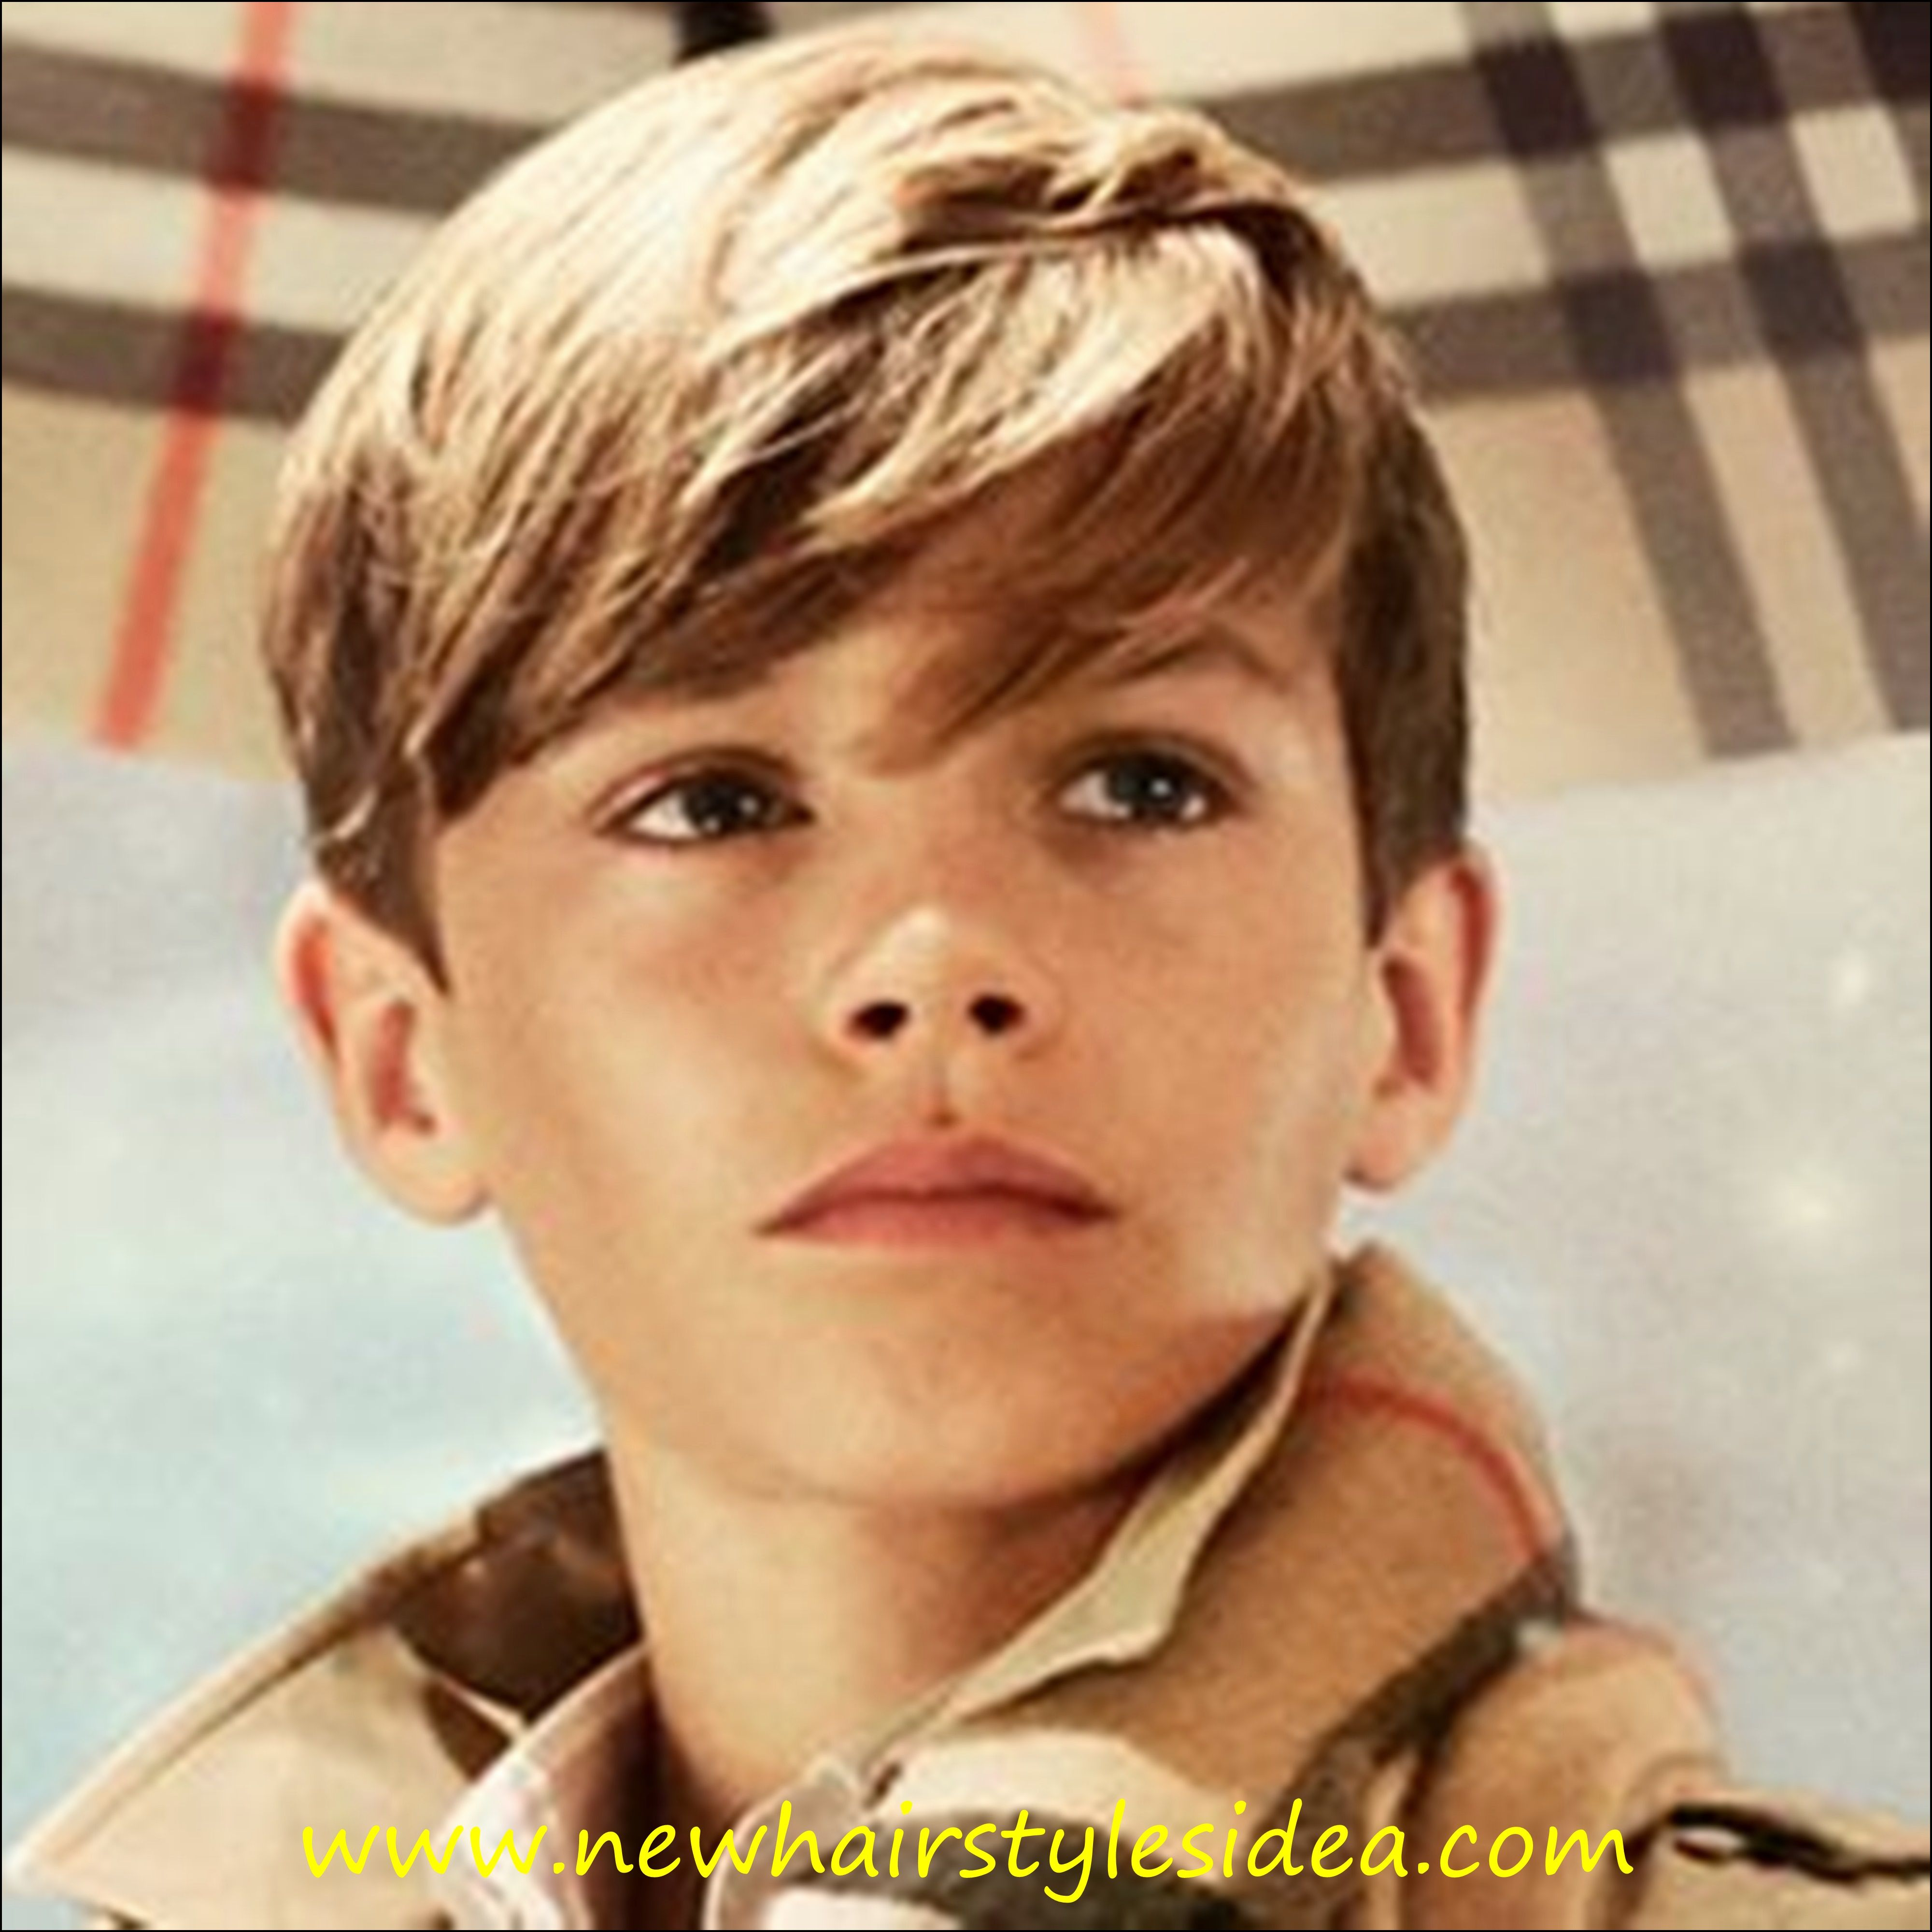 Remarkable Image Result For Hip Haircuts For 11 Year Old Boys Cameron Hairstyle Inspiration Daily Dogsangcom